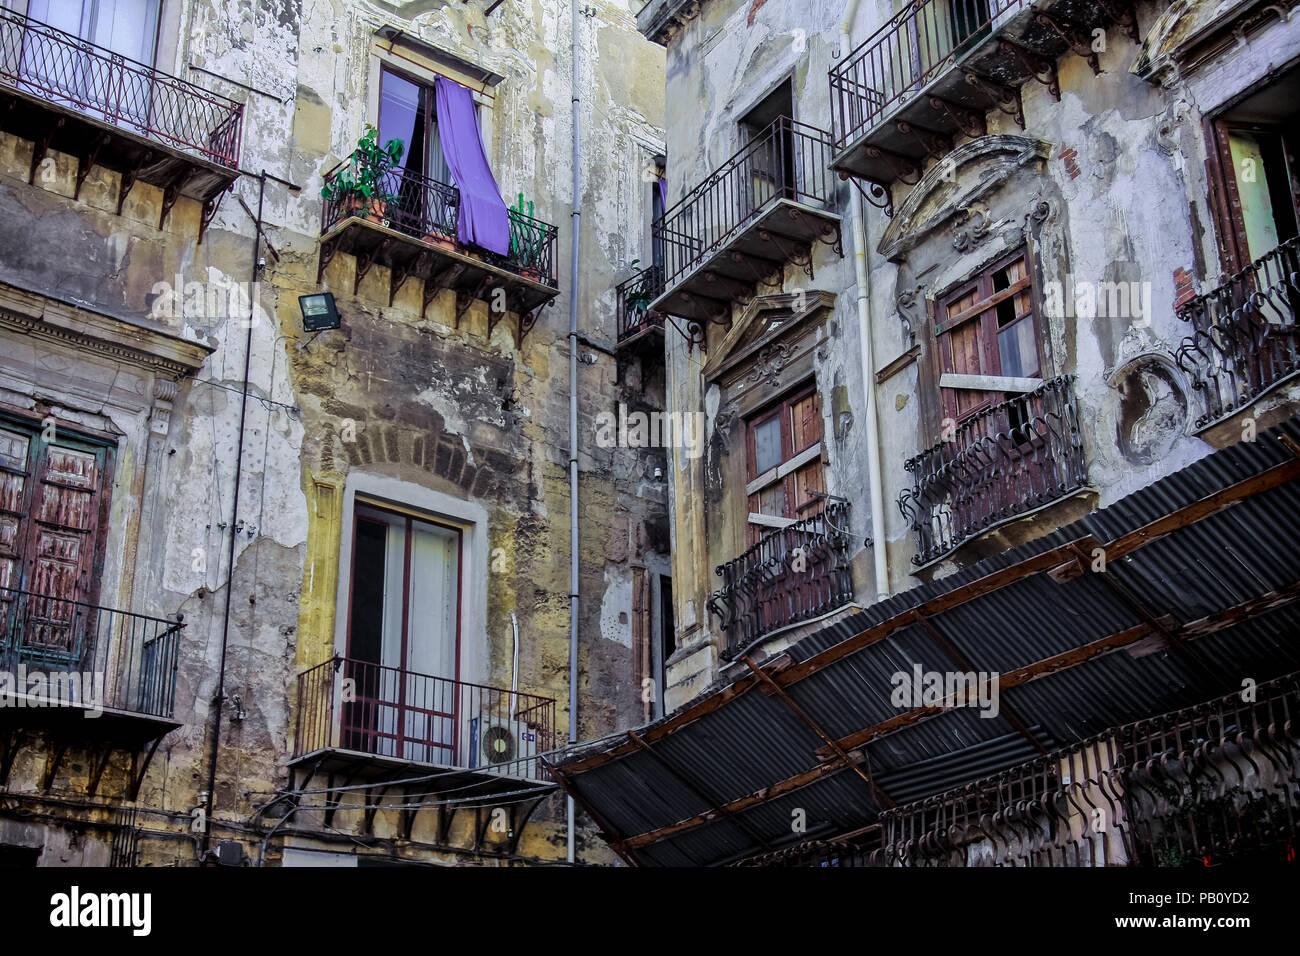 Old houses in Palermo, Sicily, Italy - Stock Image